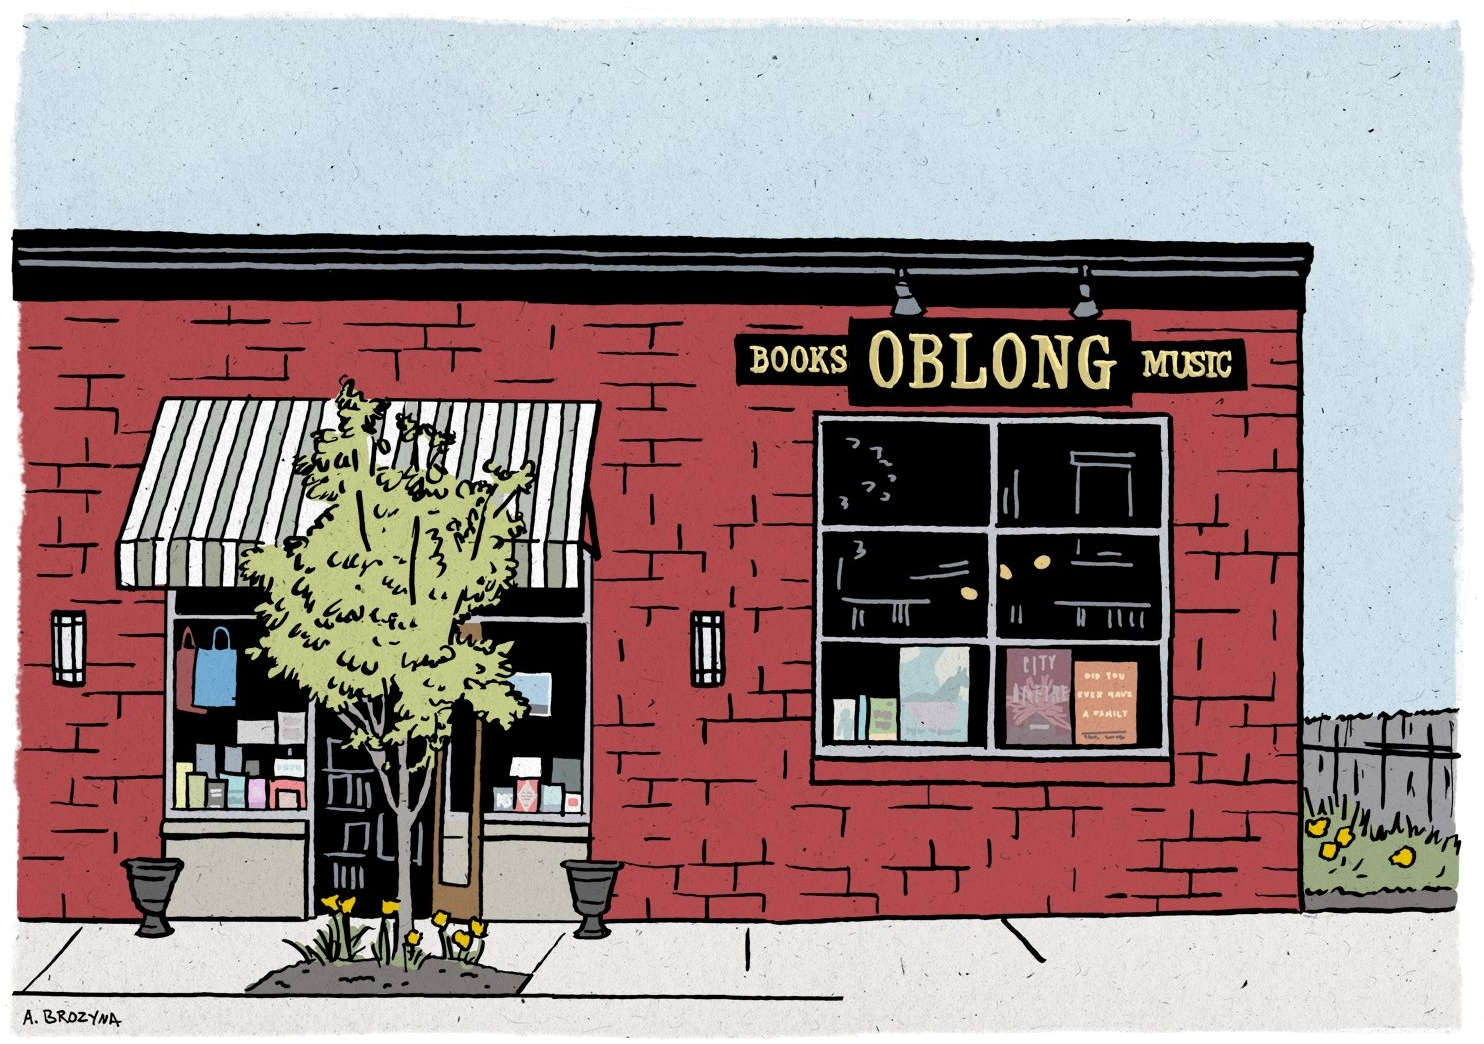 Learn more about Oblong Books and Music by clicking on the store above!